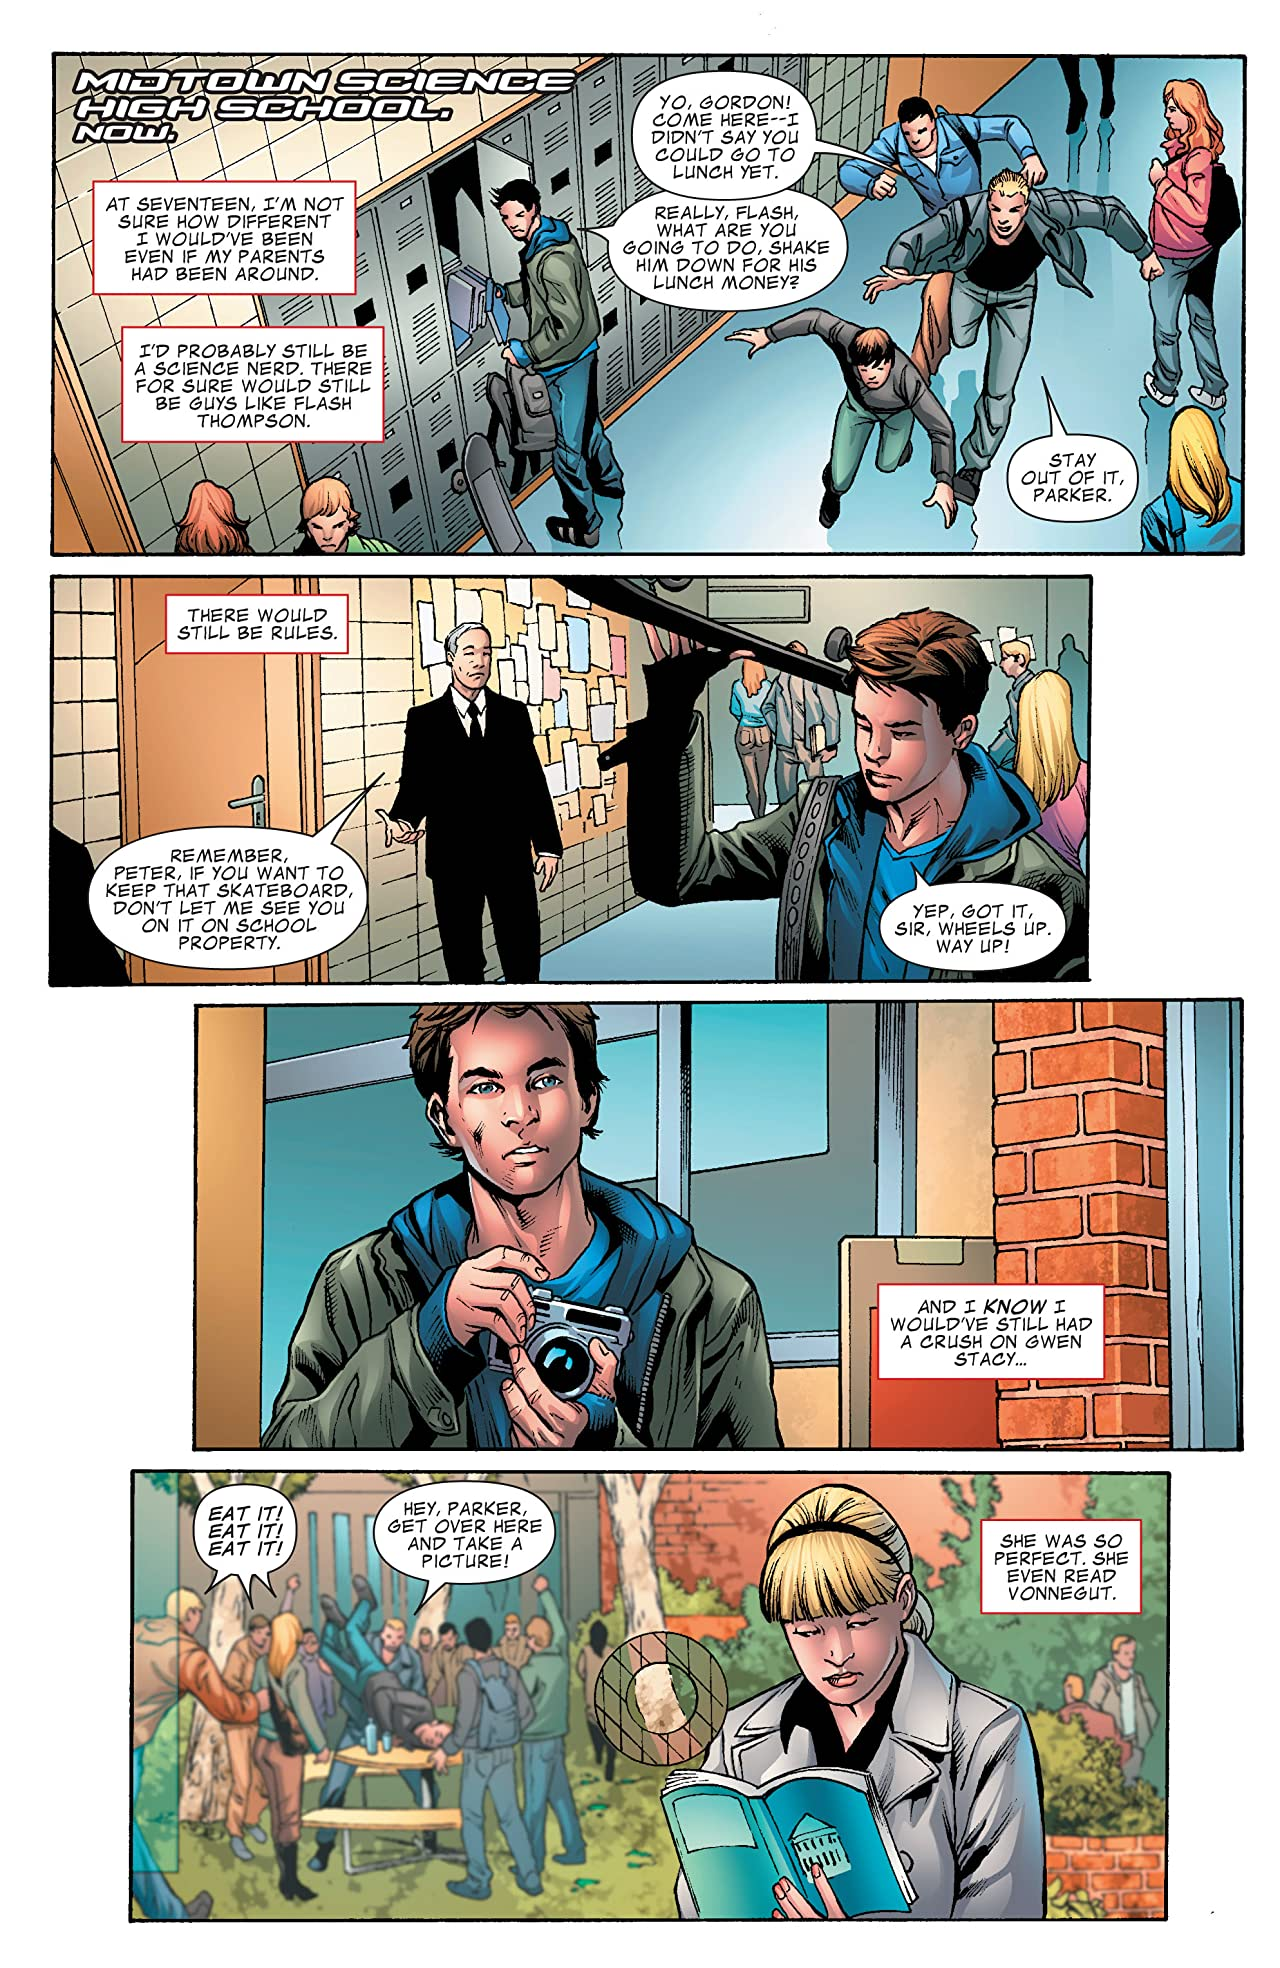 The Amazing Spider-Man: The Movie Adaptation #1 (of 2)